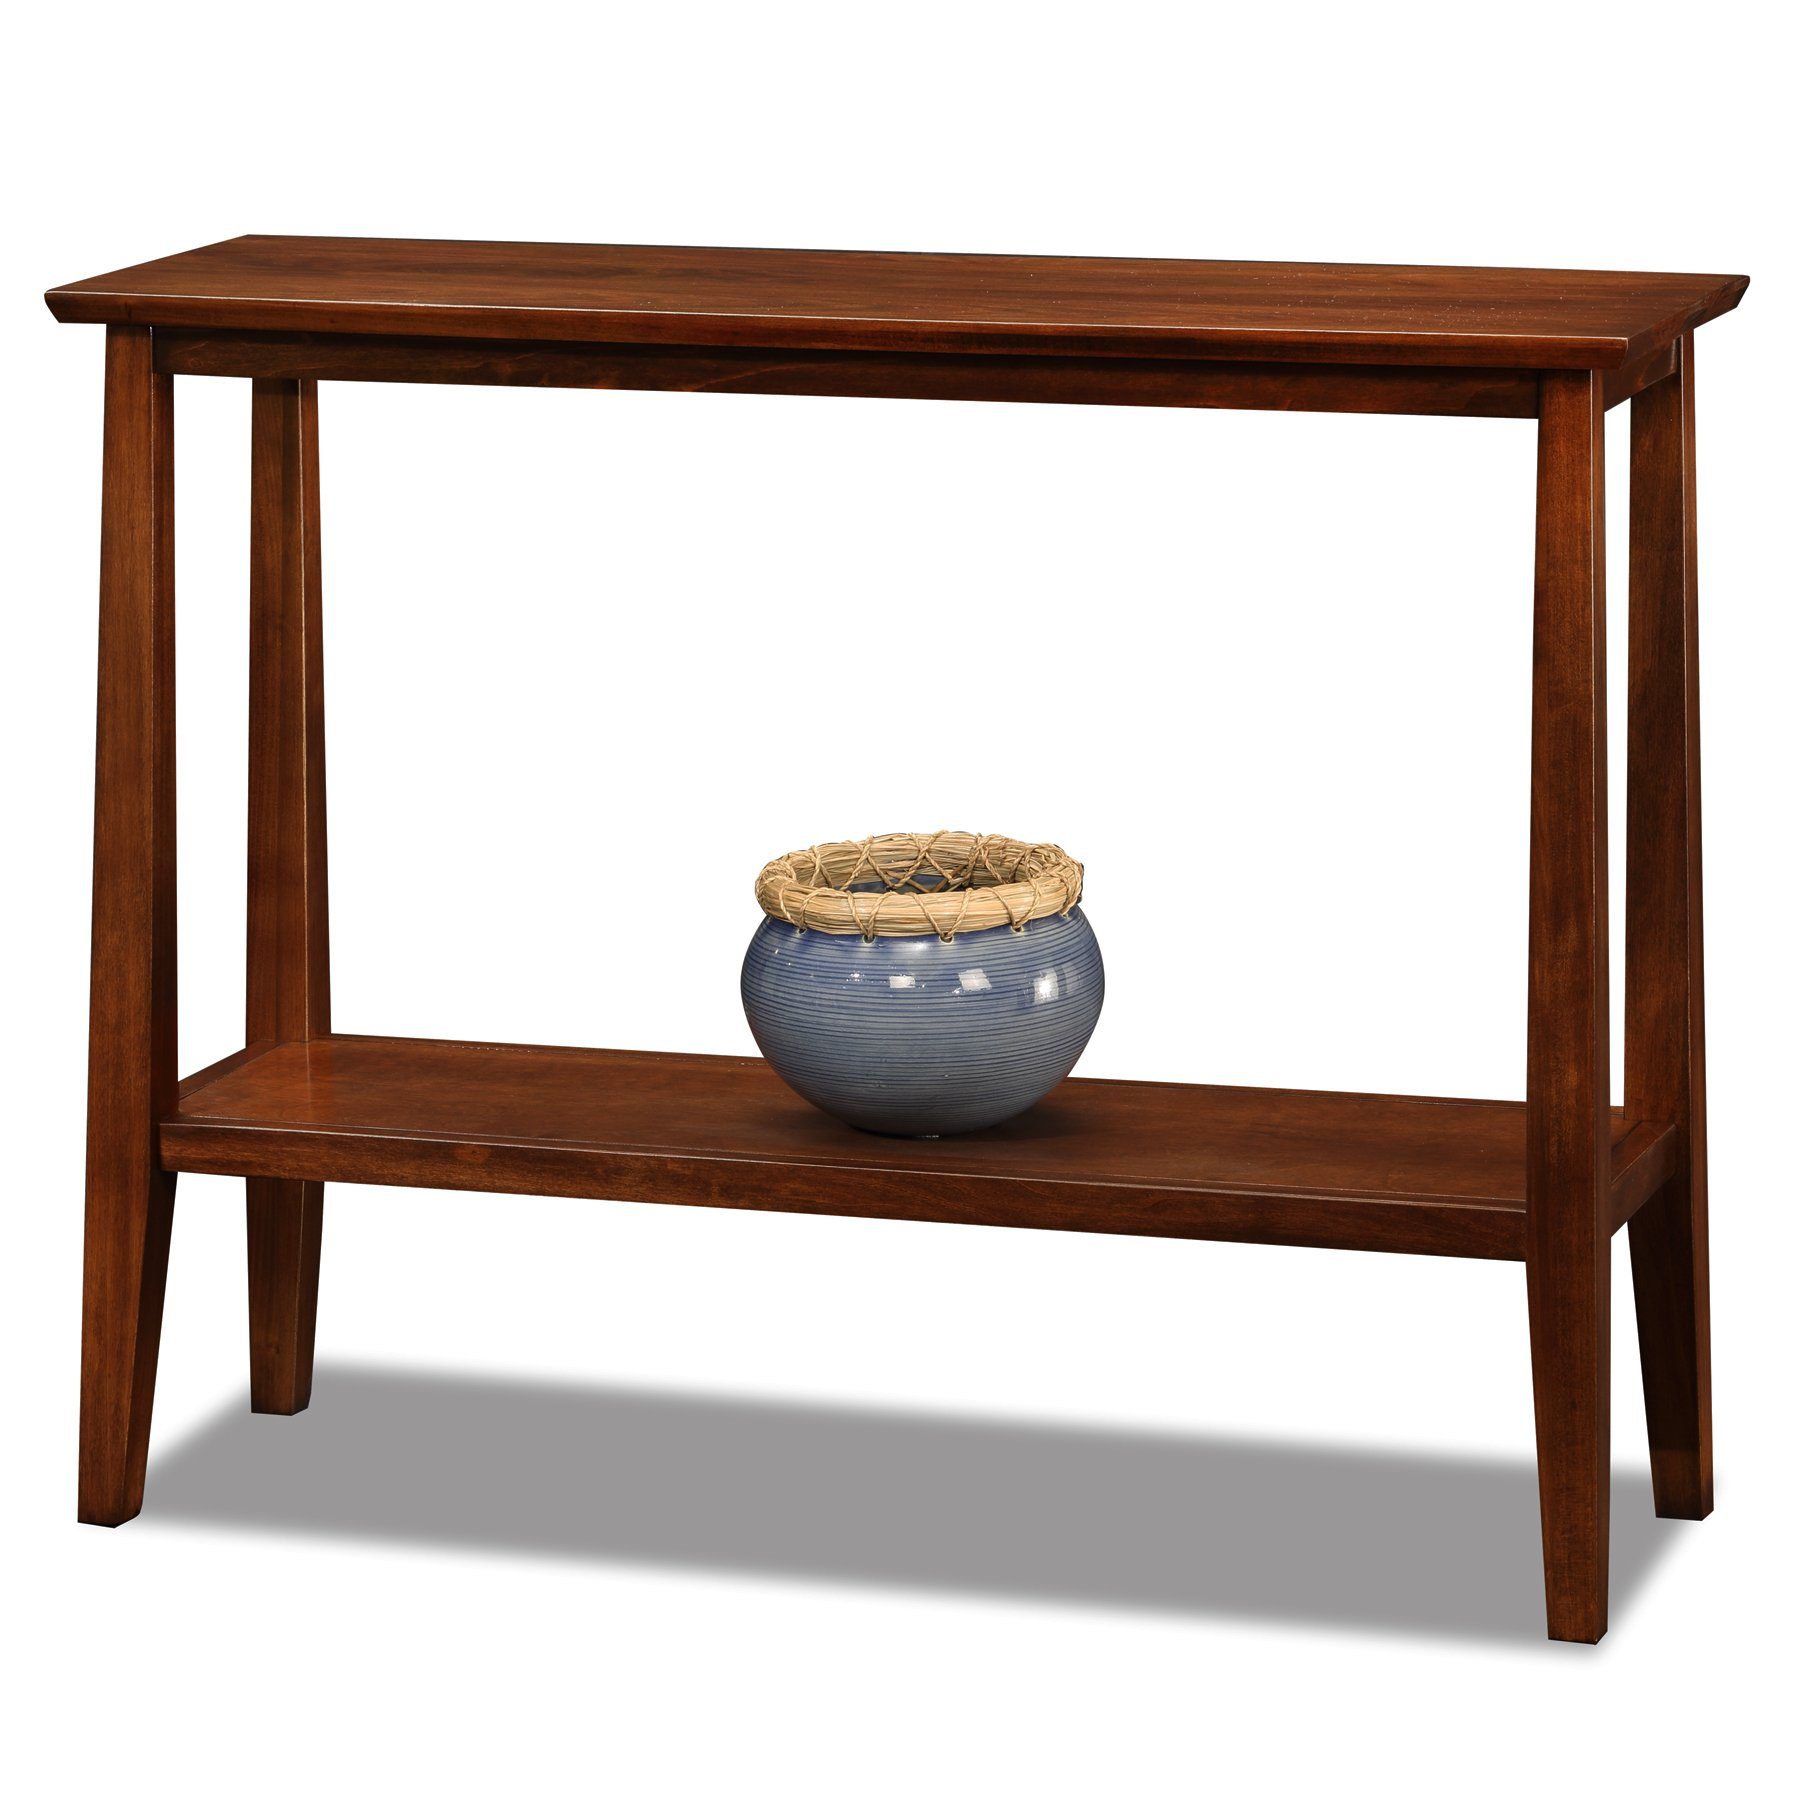 Leick Delton Hall Console Table by Leick Furniture